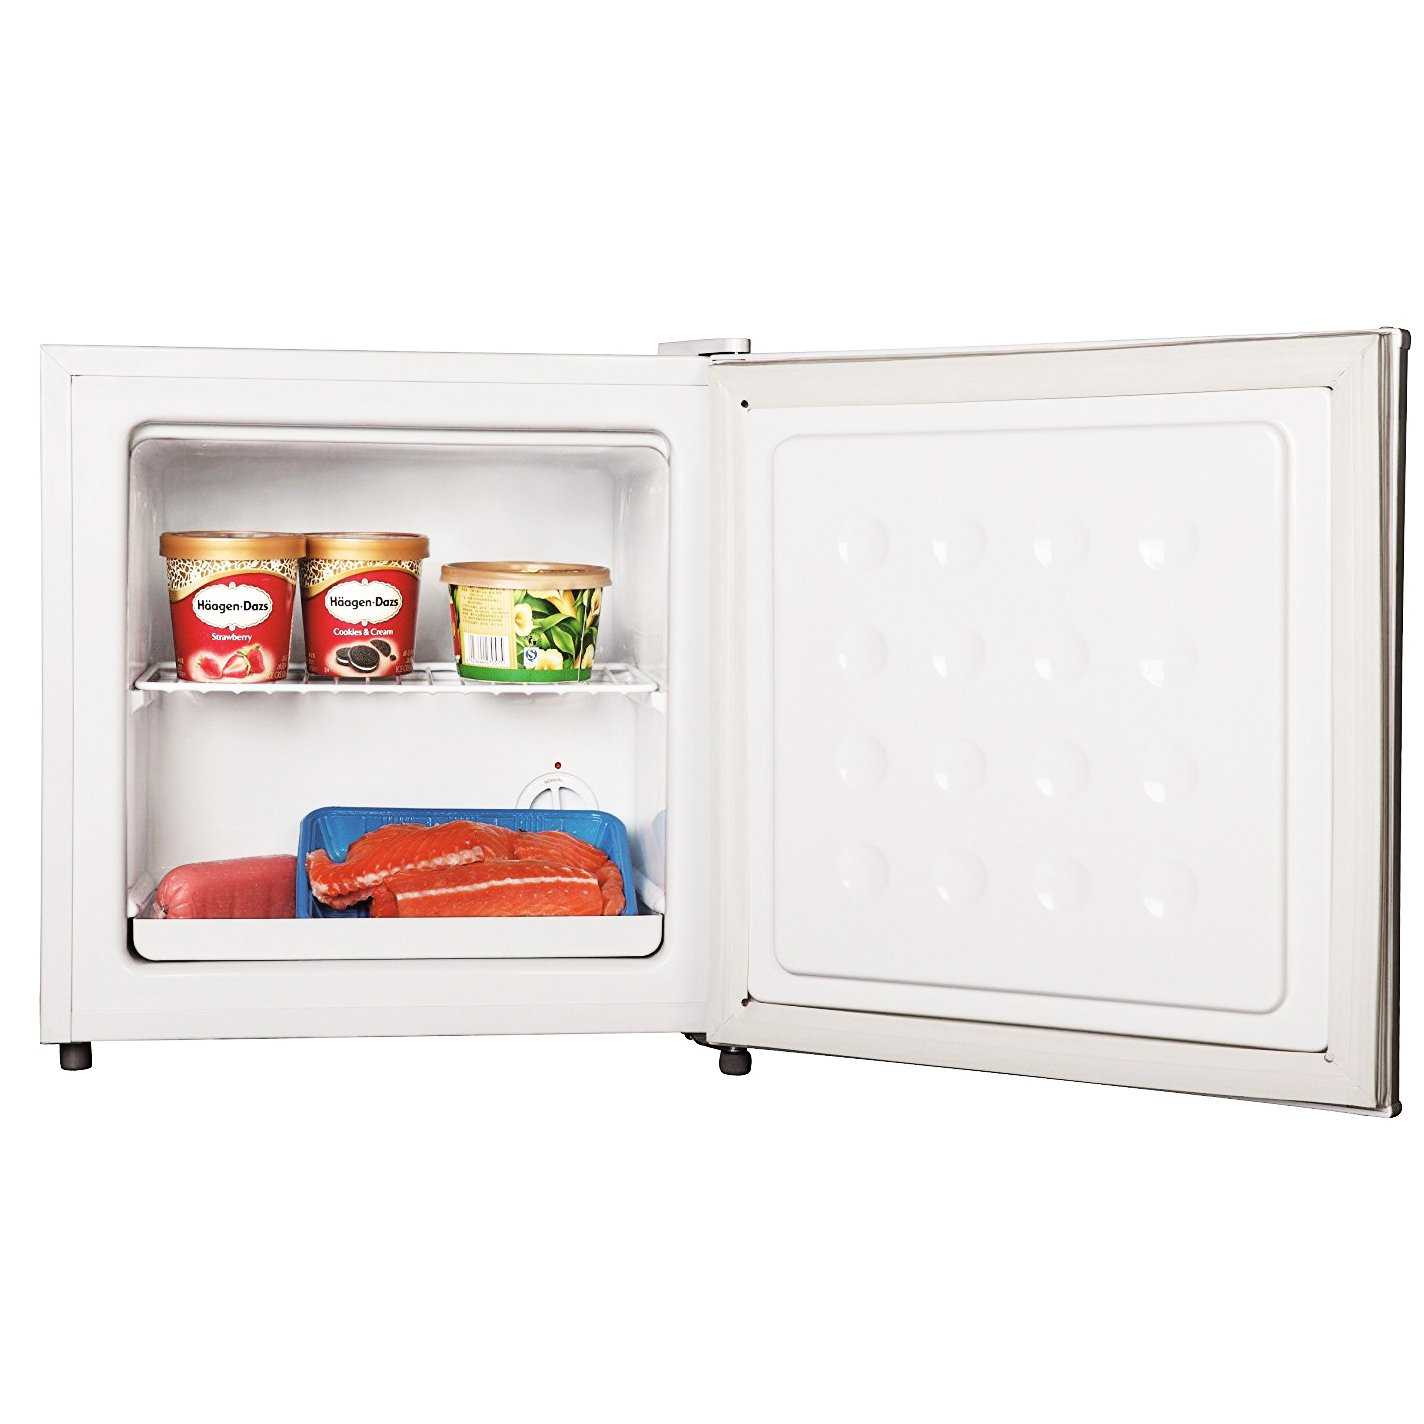 40L Table Top Counter Freezer